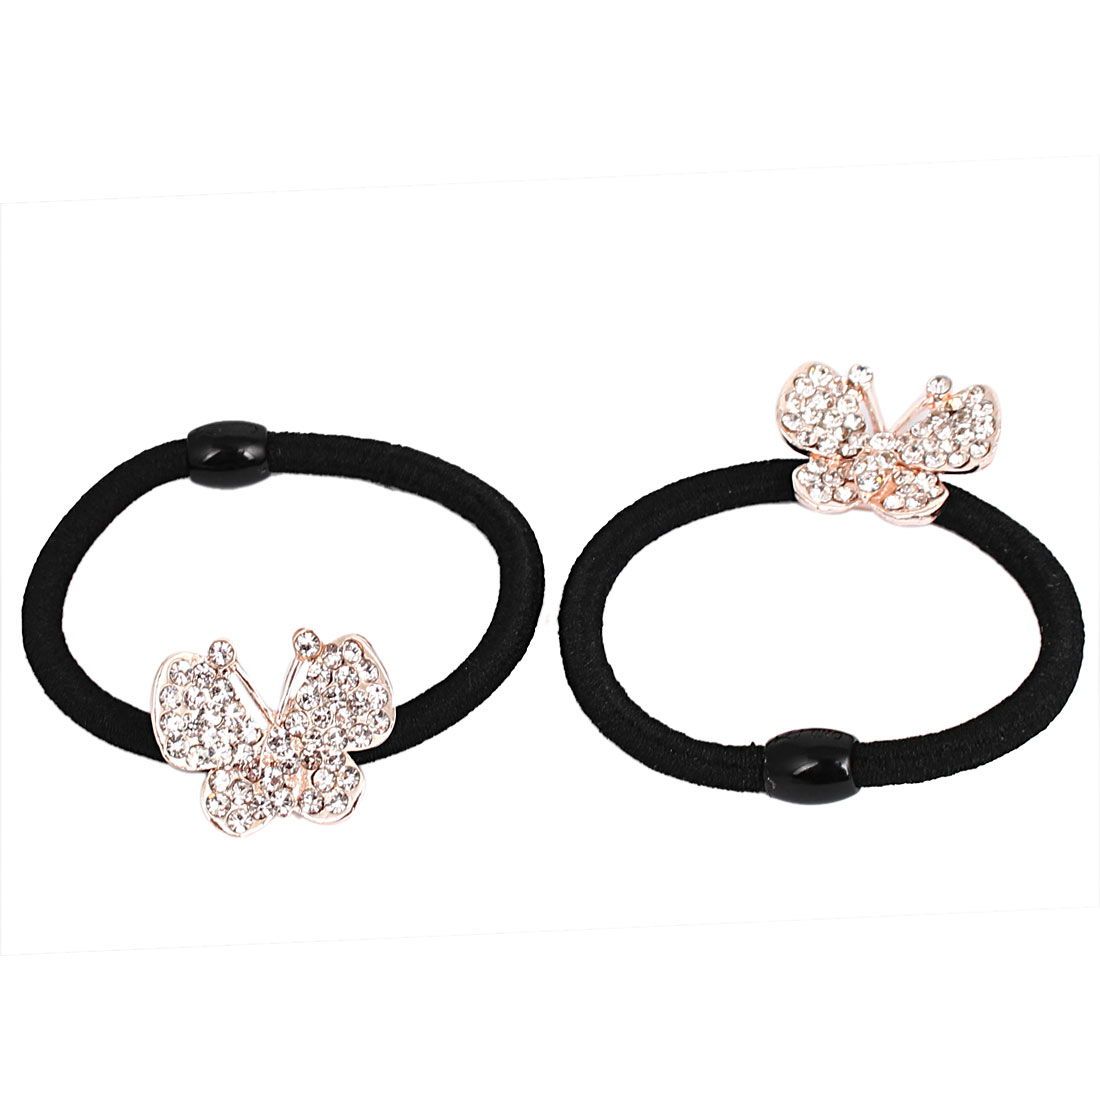 Faux Rhinestone Inlaid Butterfly Decor Women Elastic Hair Ring Rope Band Ponytail Holder Black 2Pcs